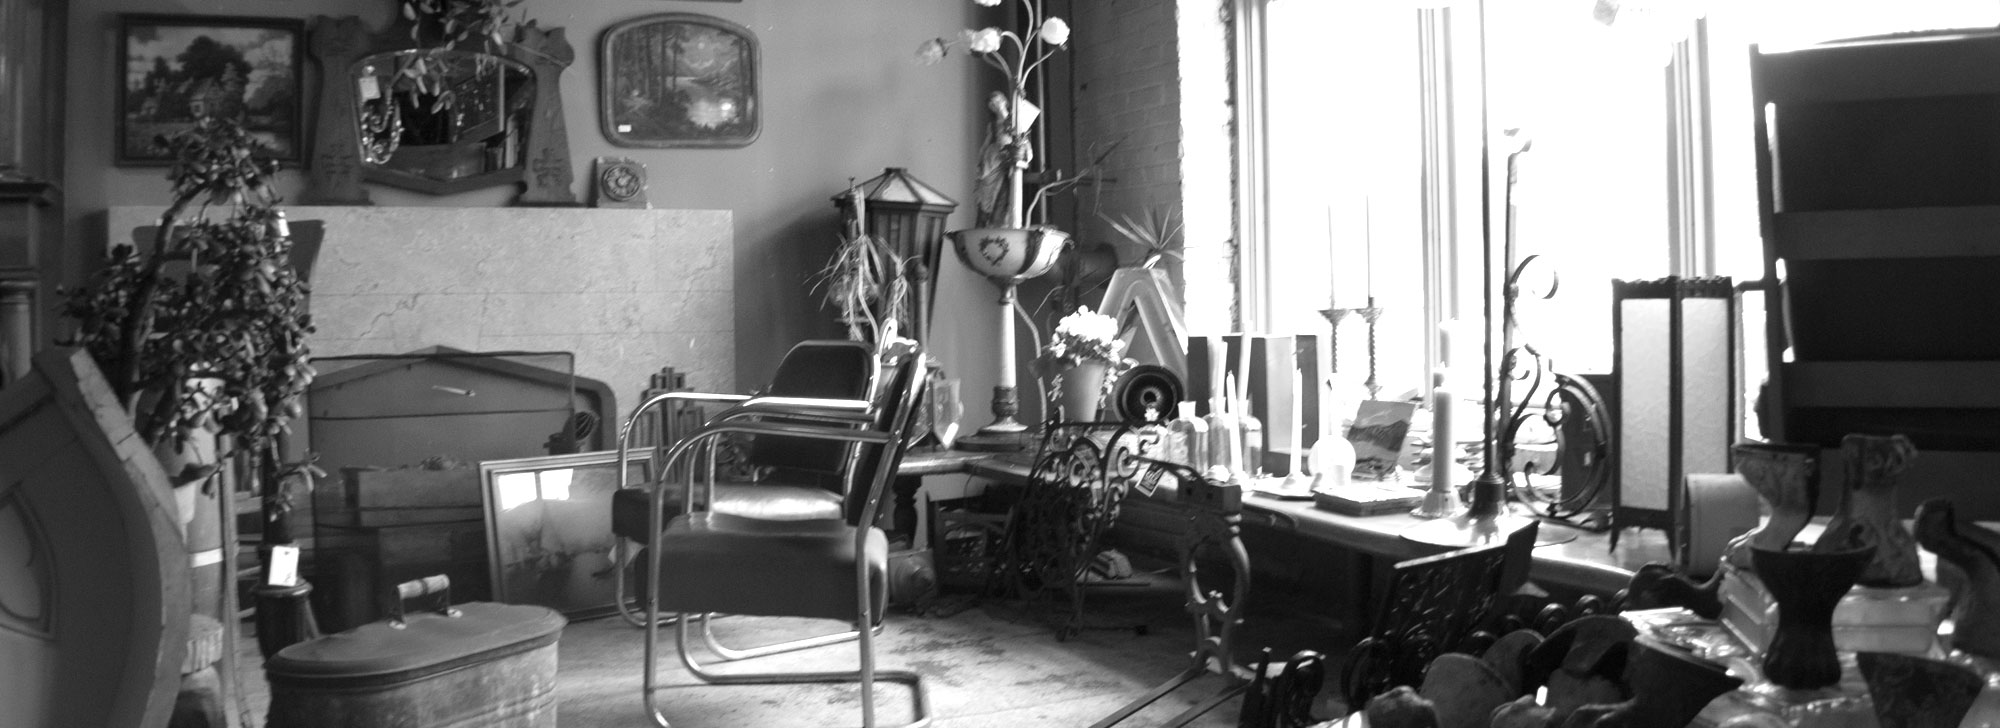 City Salvage showroom interior—various household antiques near a large window on a bright day.